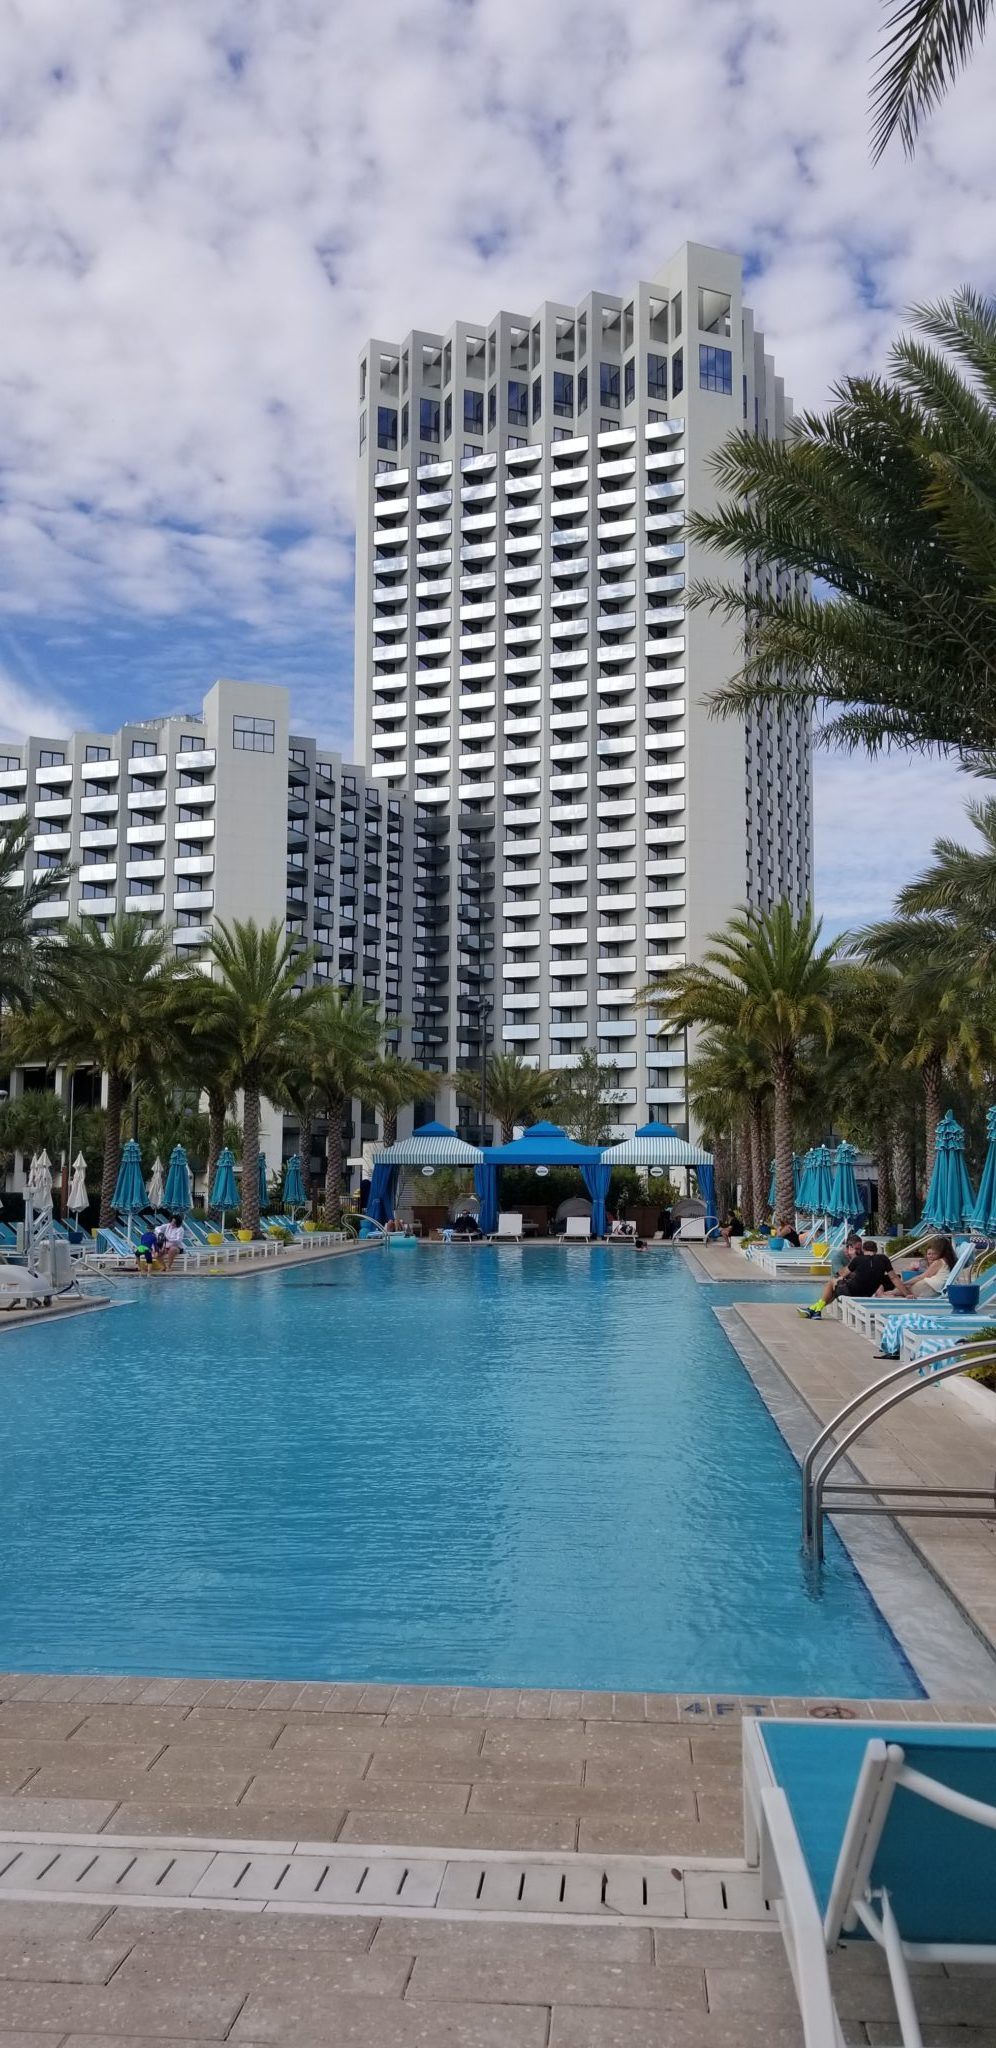 Hilton Orlando Videos And Pictures